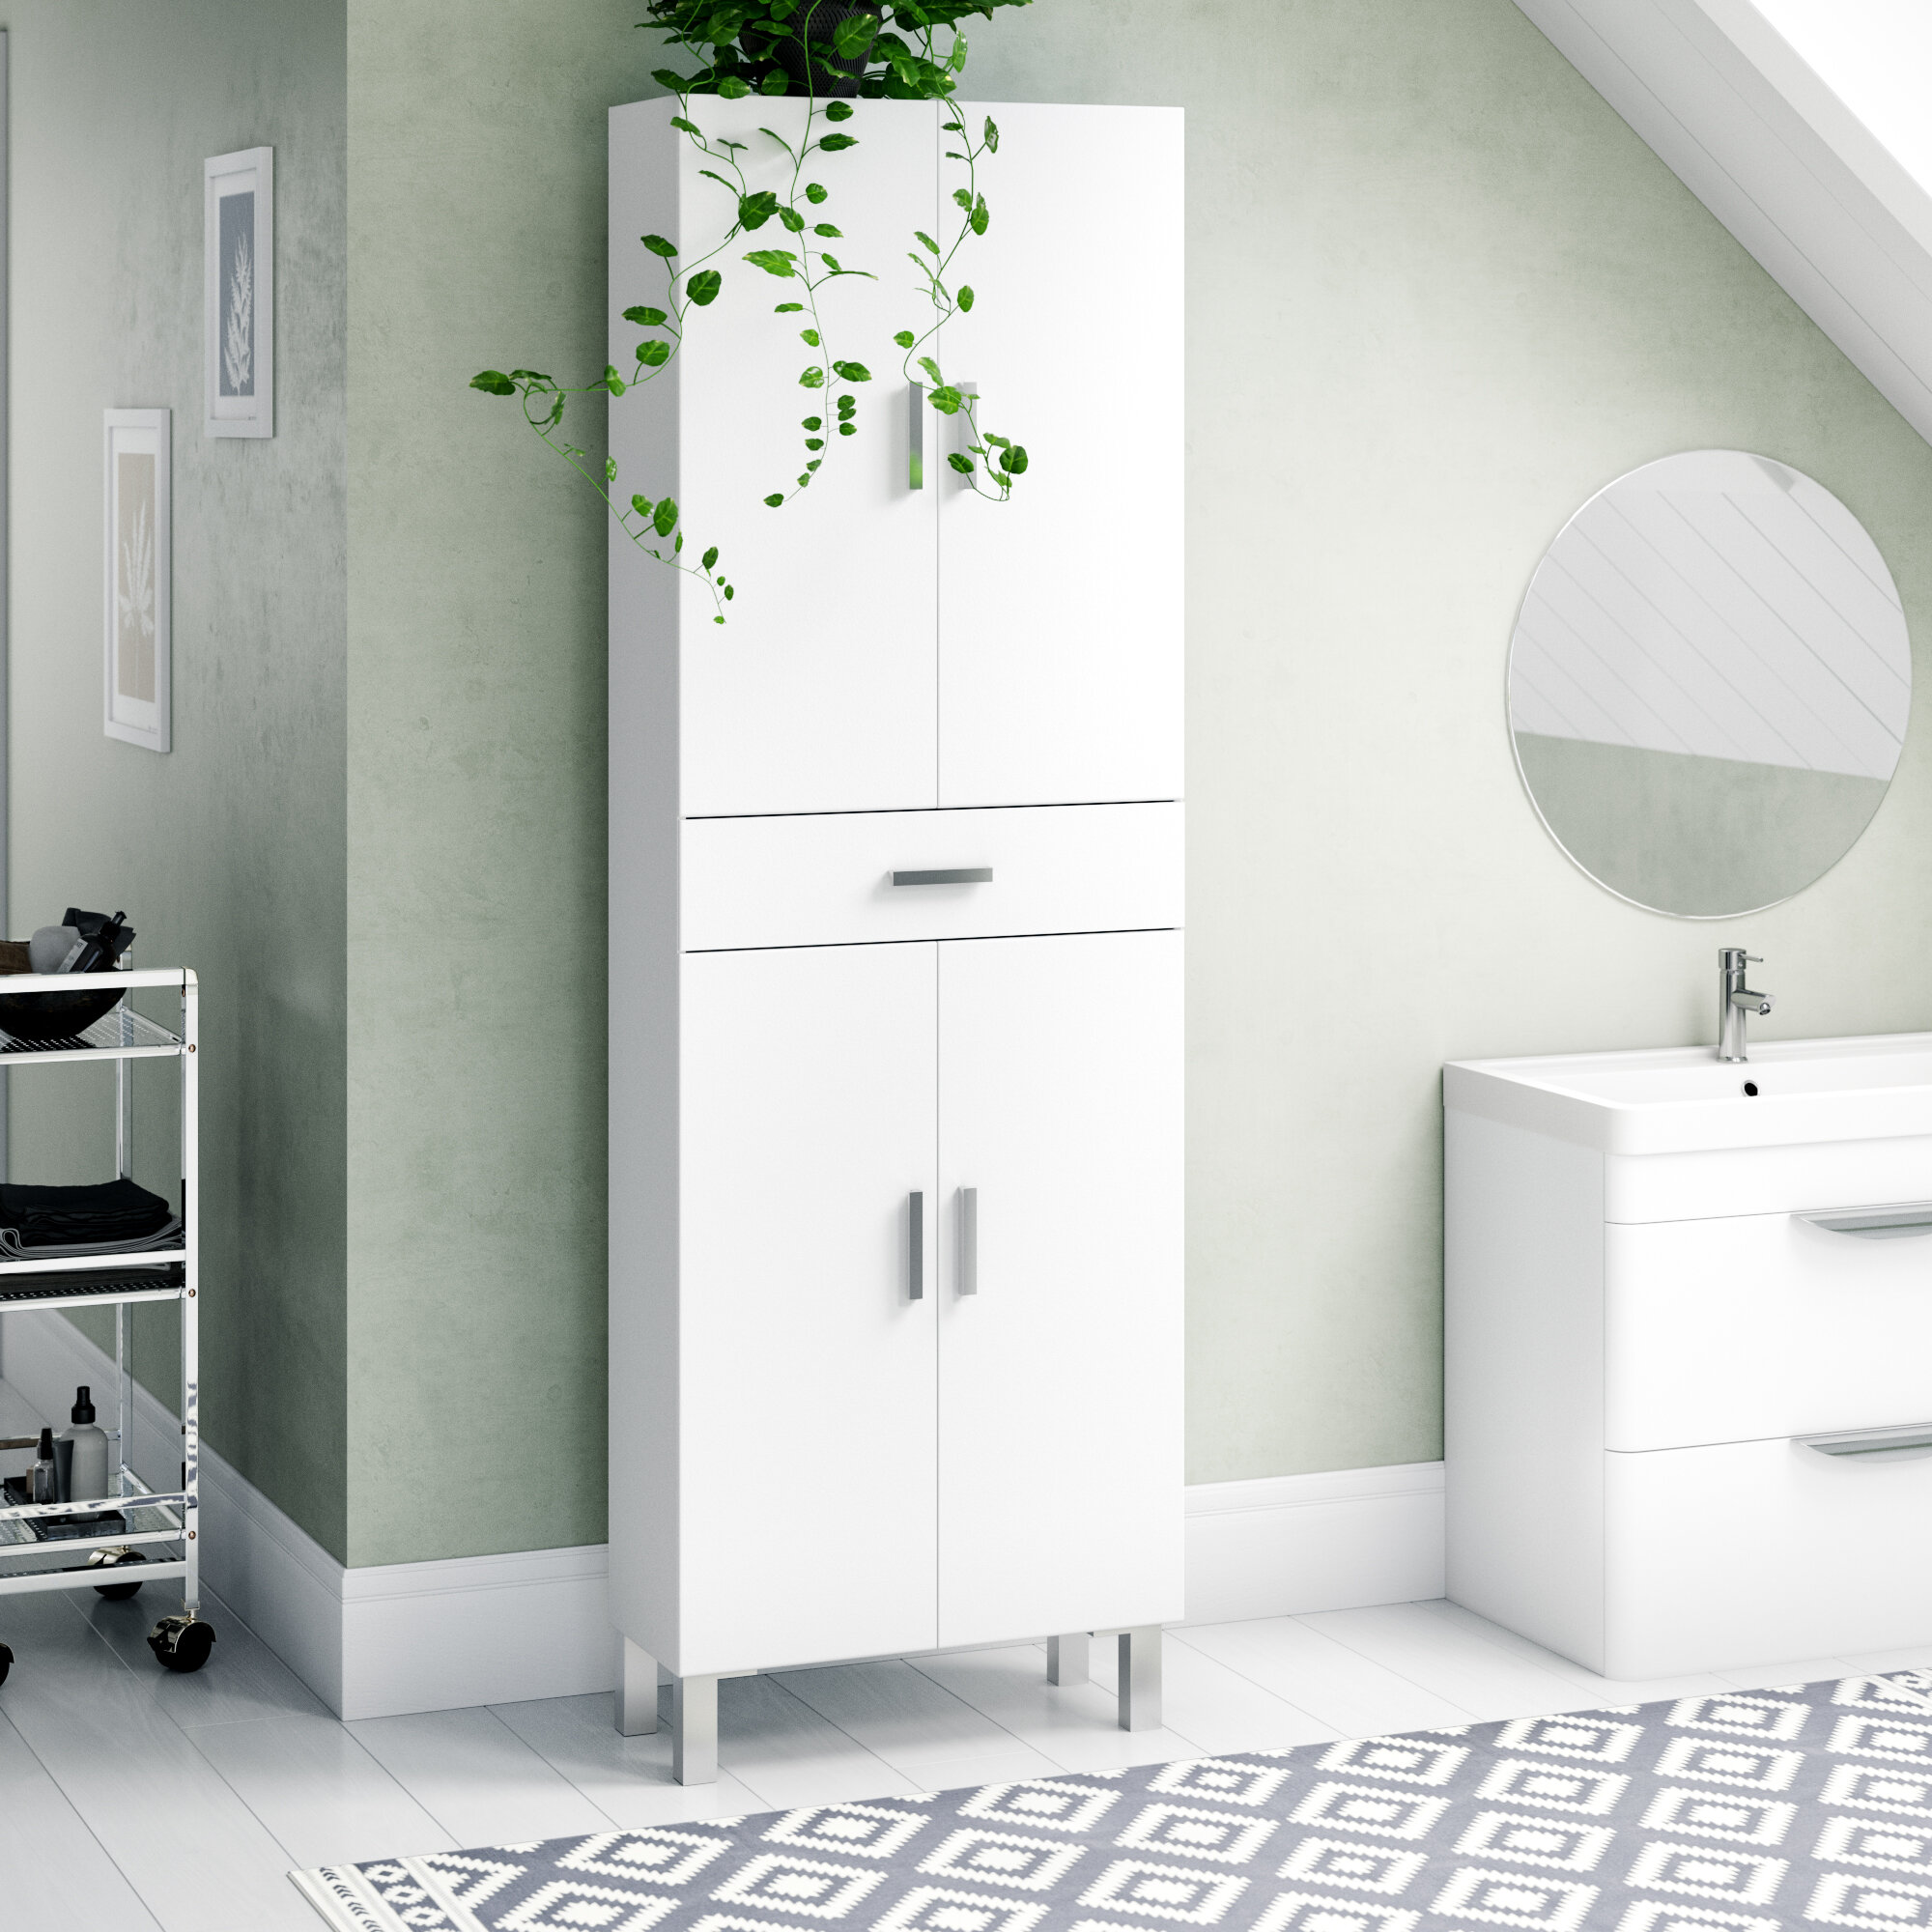 Marvelous Valdo 60Cm W X 182Cm H Bathroom Cabinet Download Free Architecture Designs Itiscsunscenecom